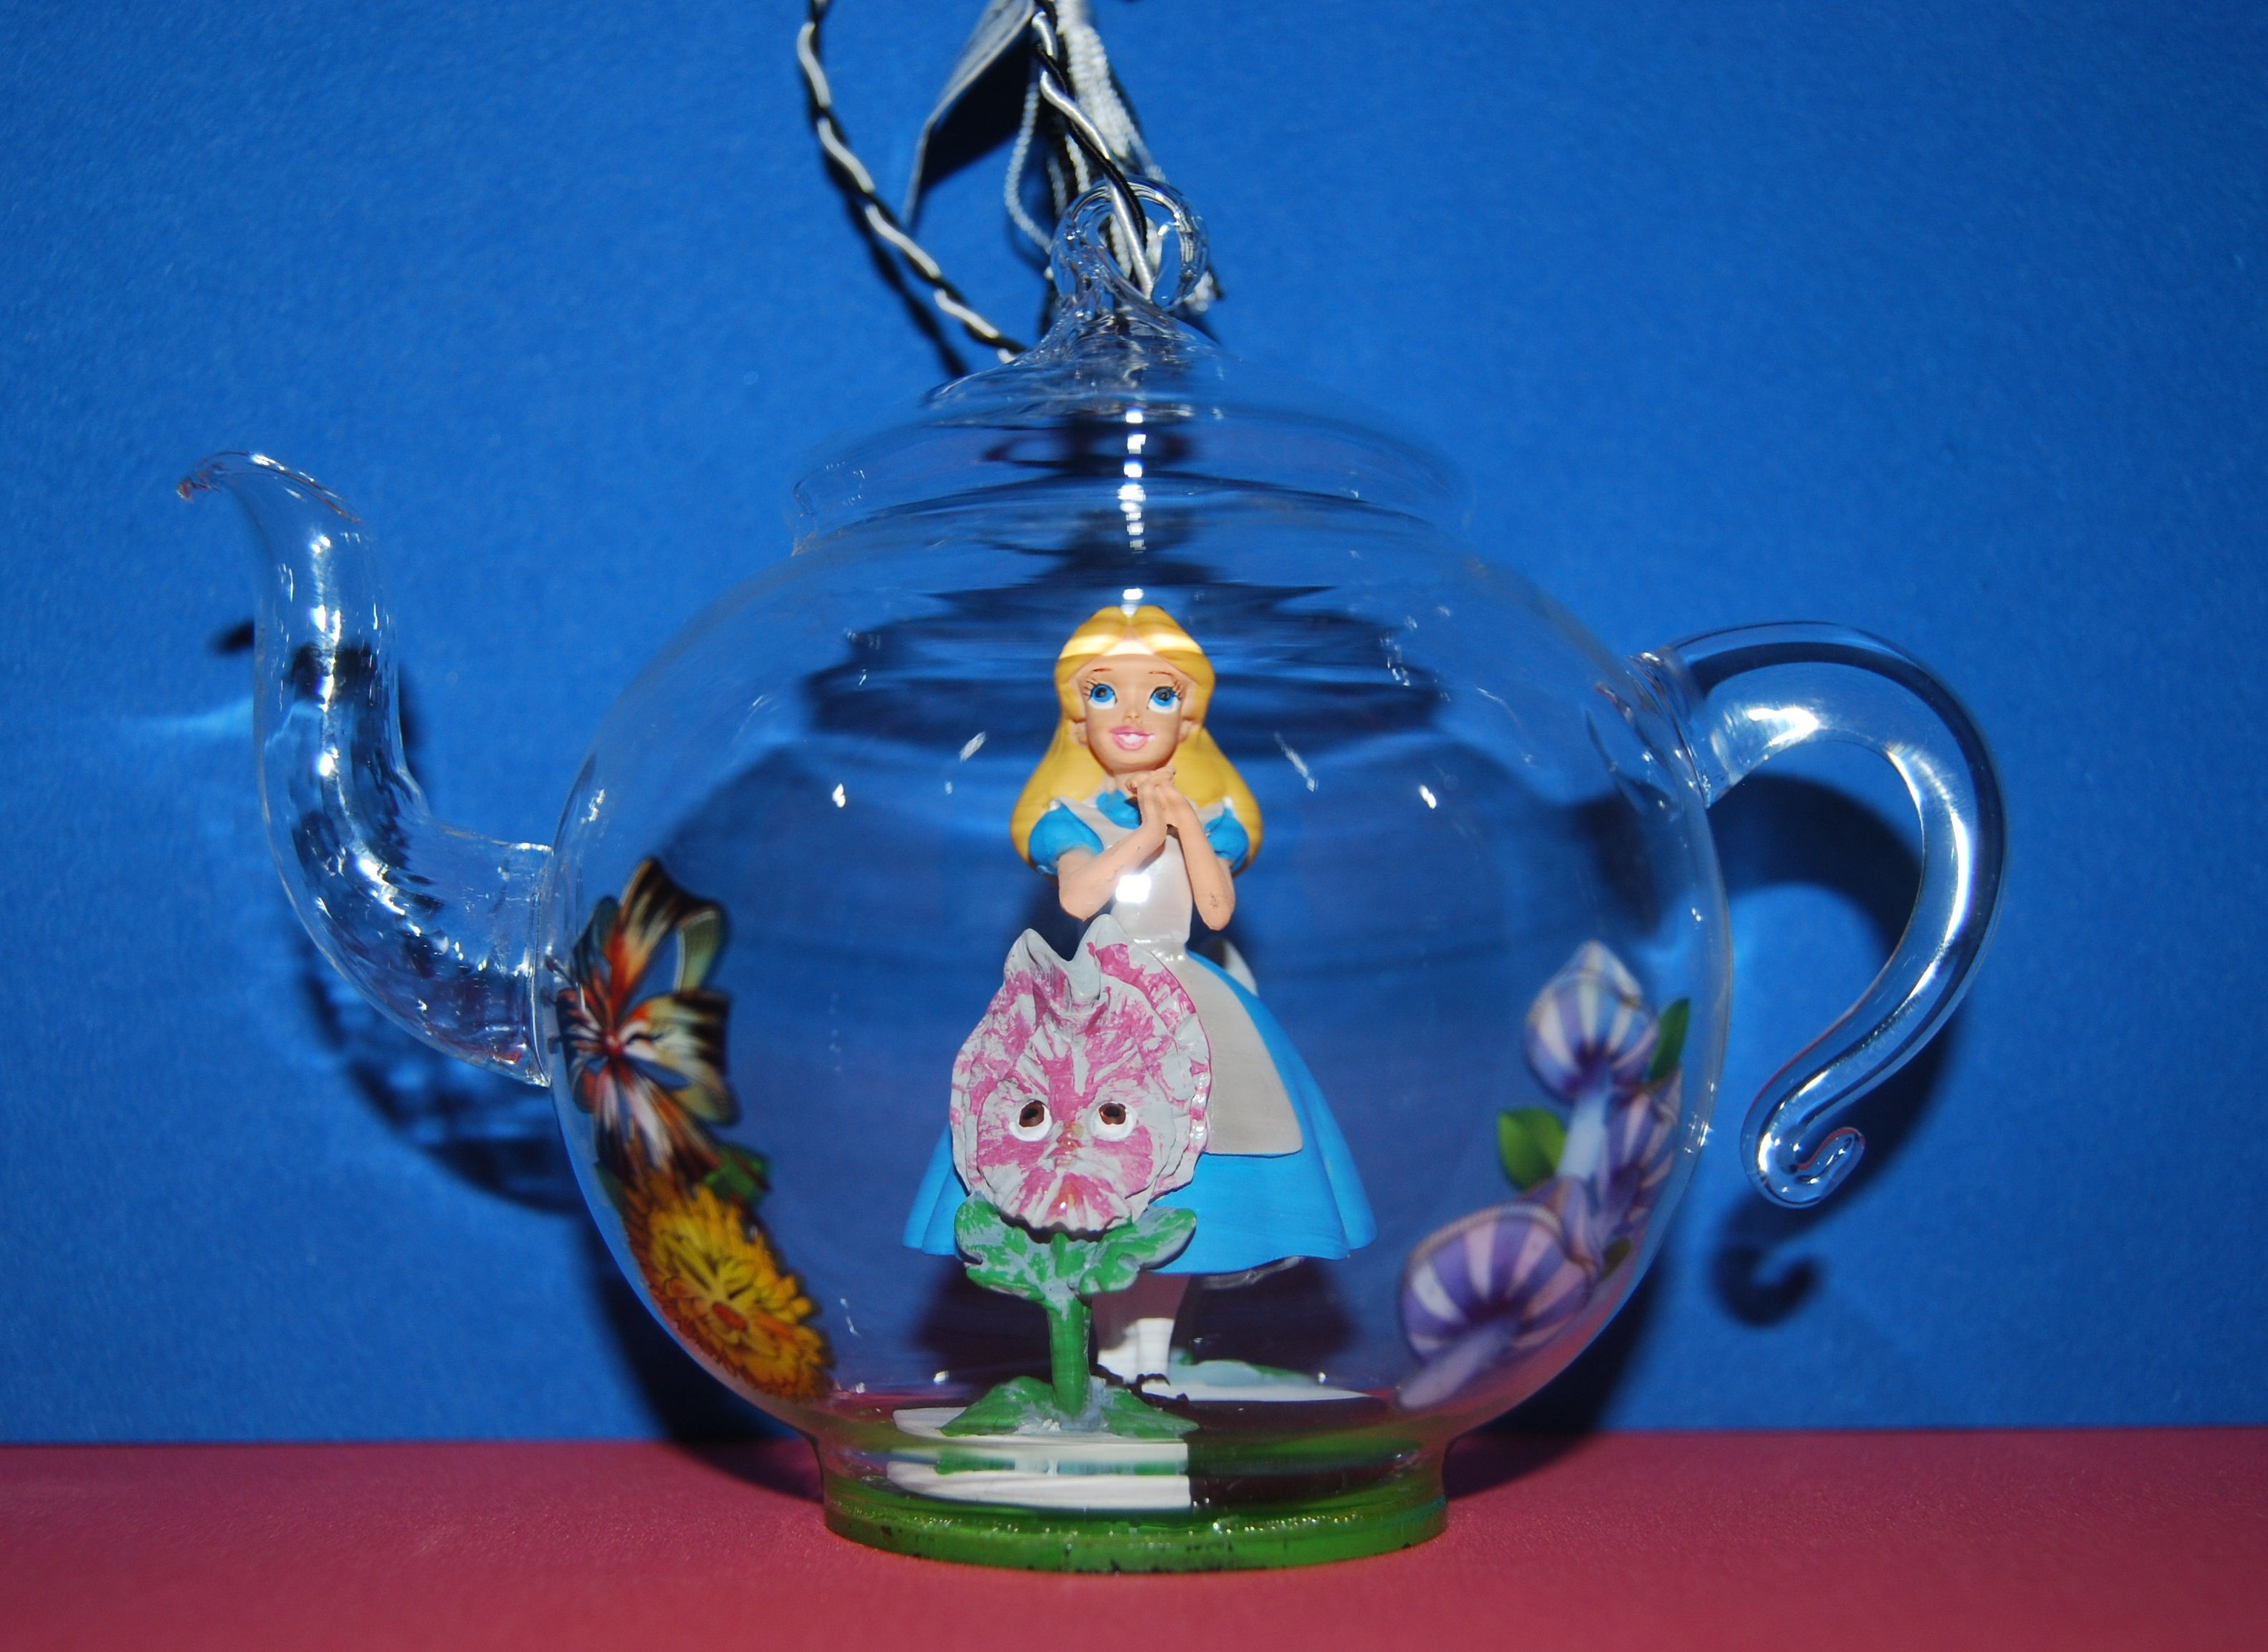 Alice in Wonderland Glass Teapot ornament a Disney Parks